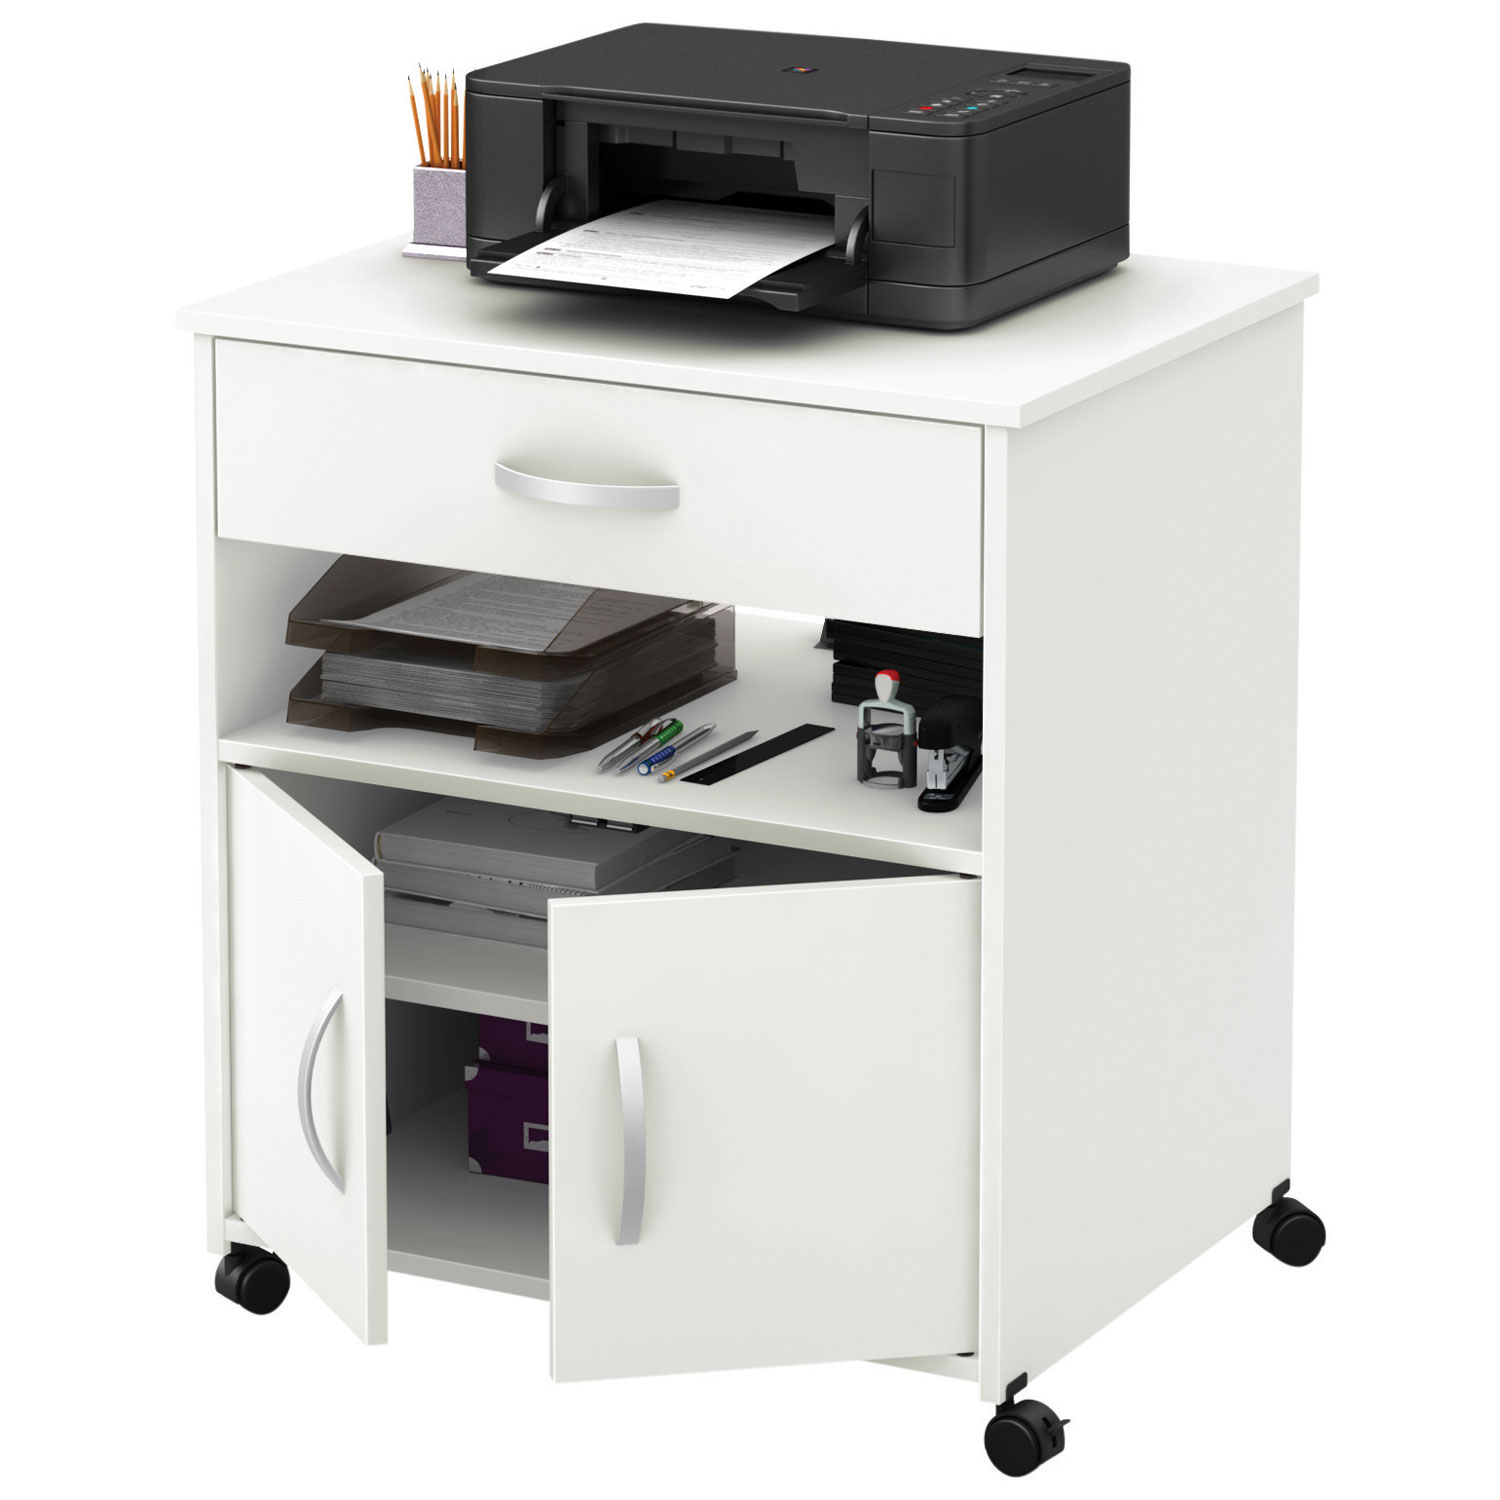 axess mobile printer stand pure white filing cabinets u office storage best buy canada with. Black Bedroom Furniture Sets. Home Design Ideas